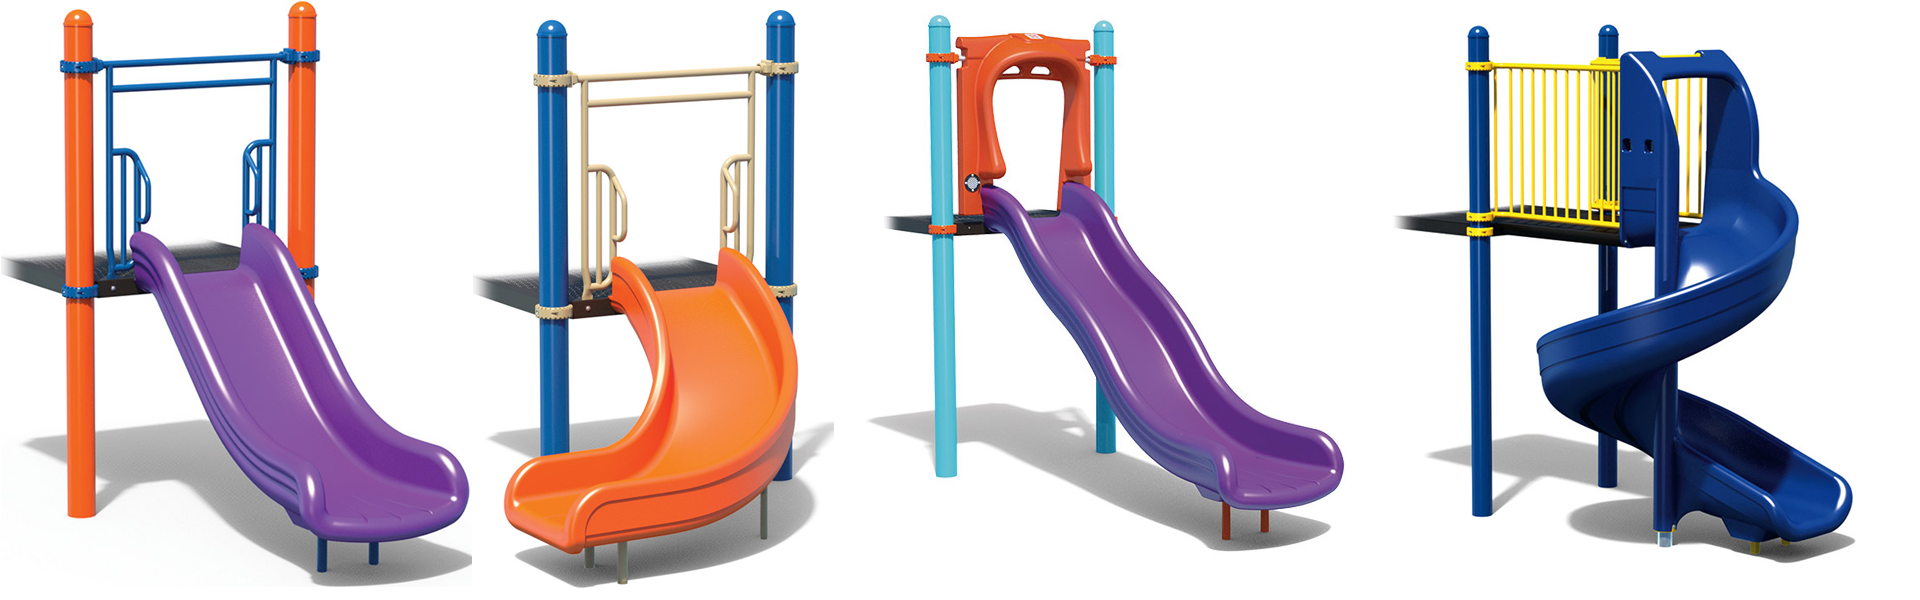 indoor play equipment manufacturers